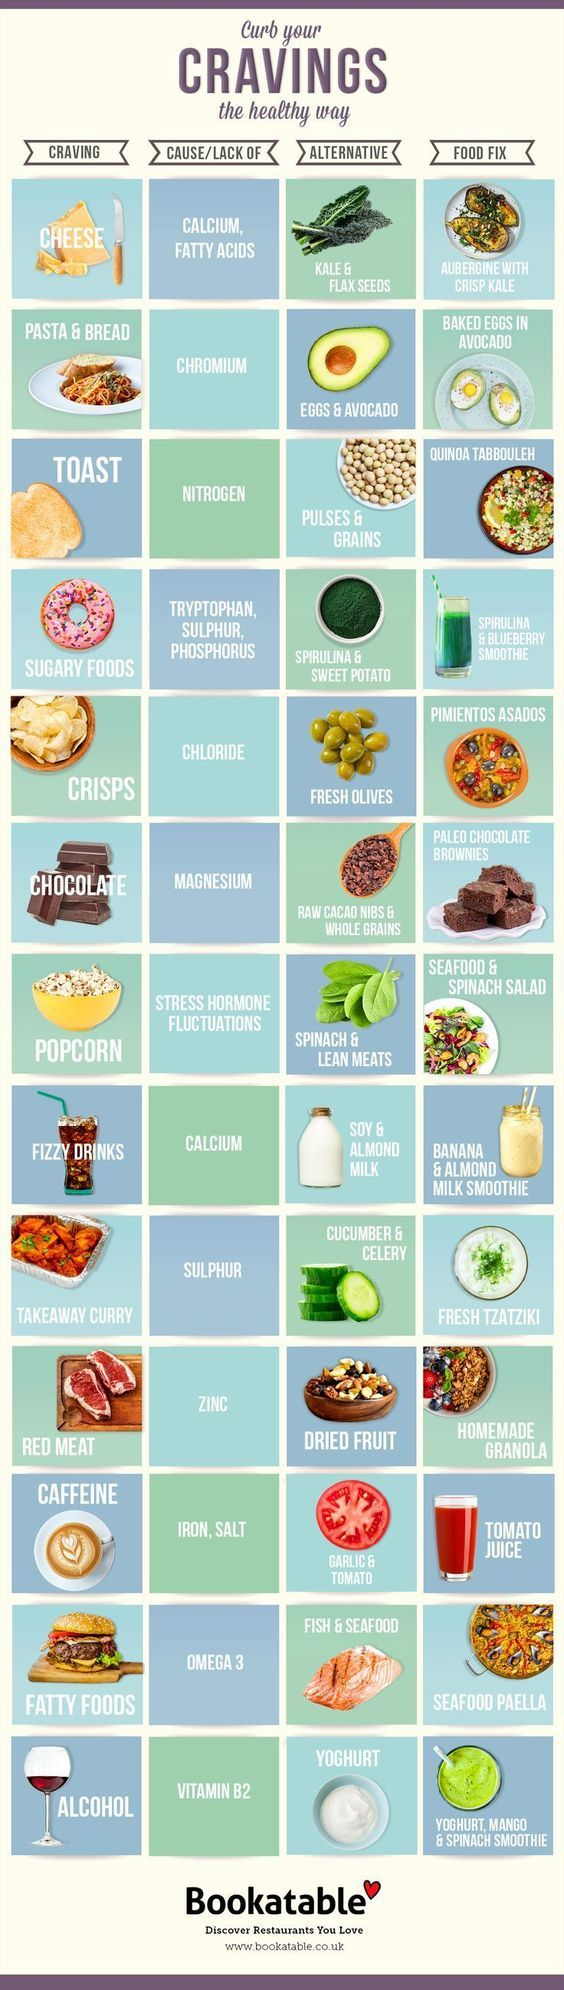 Curb your cravings the healthy way try these healthy natural appetite suppressants to help you achieve your weight loss goals